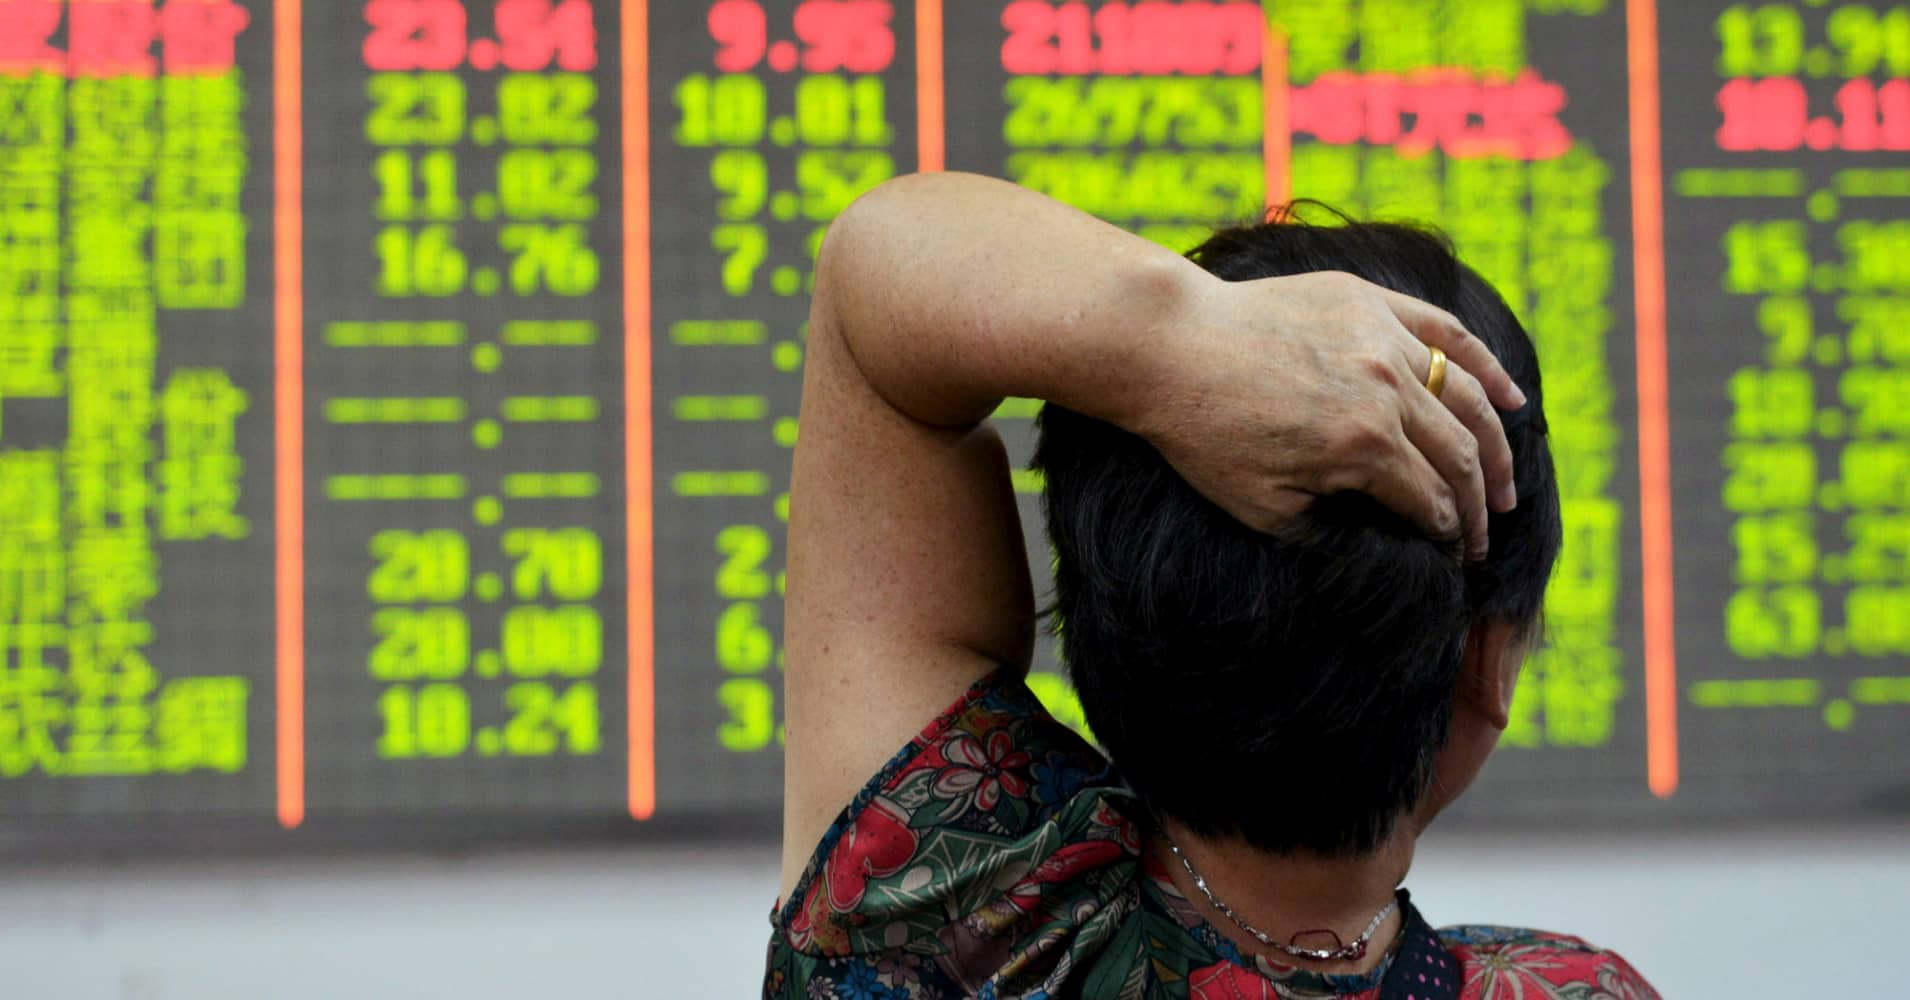 Chinese stocks fall as government cracks down on mergers and media